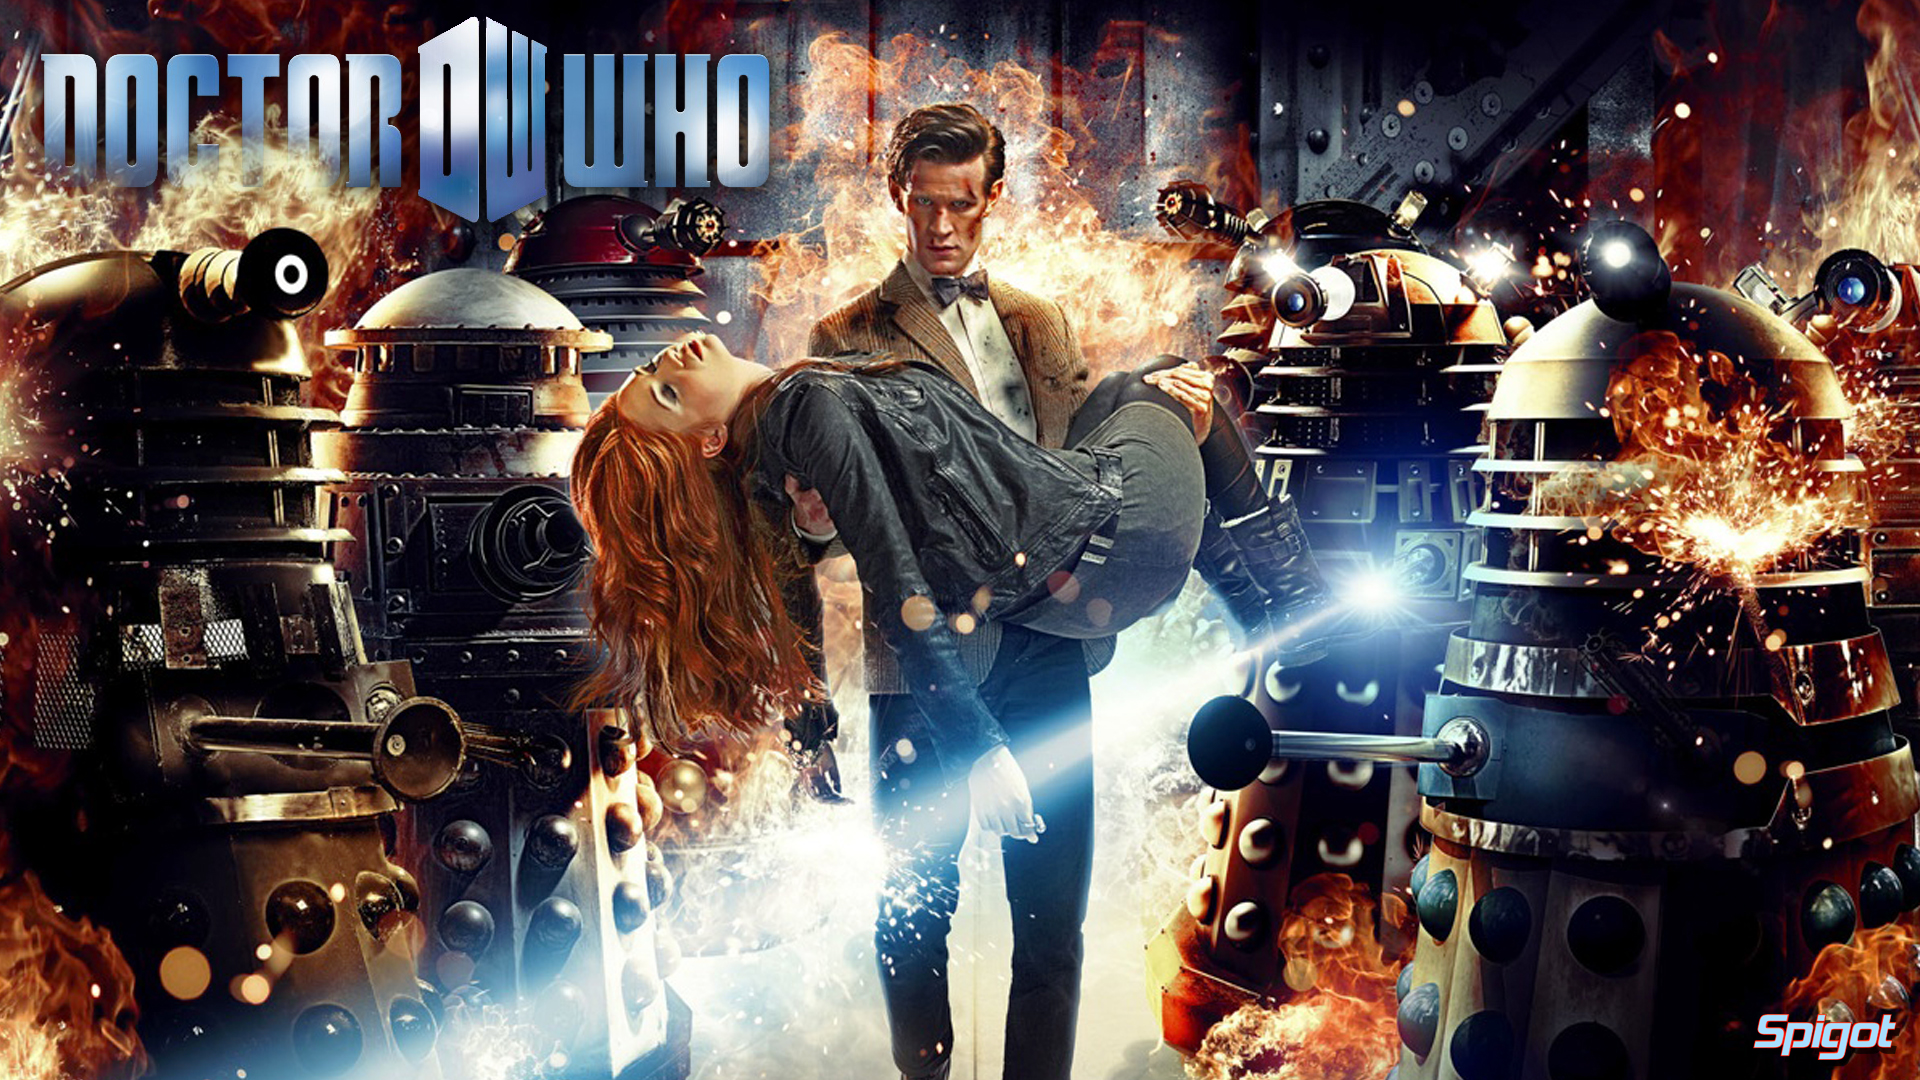 Doctor who george spigot 39 s blog - Dr who wallpaper ...